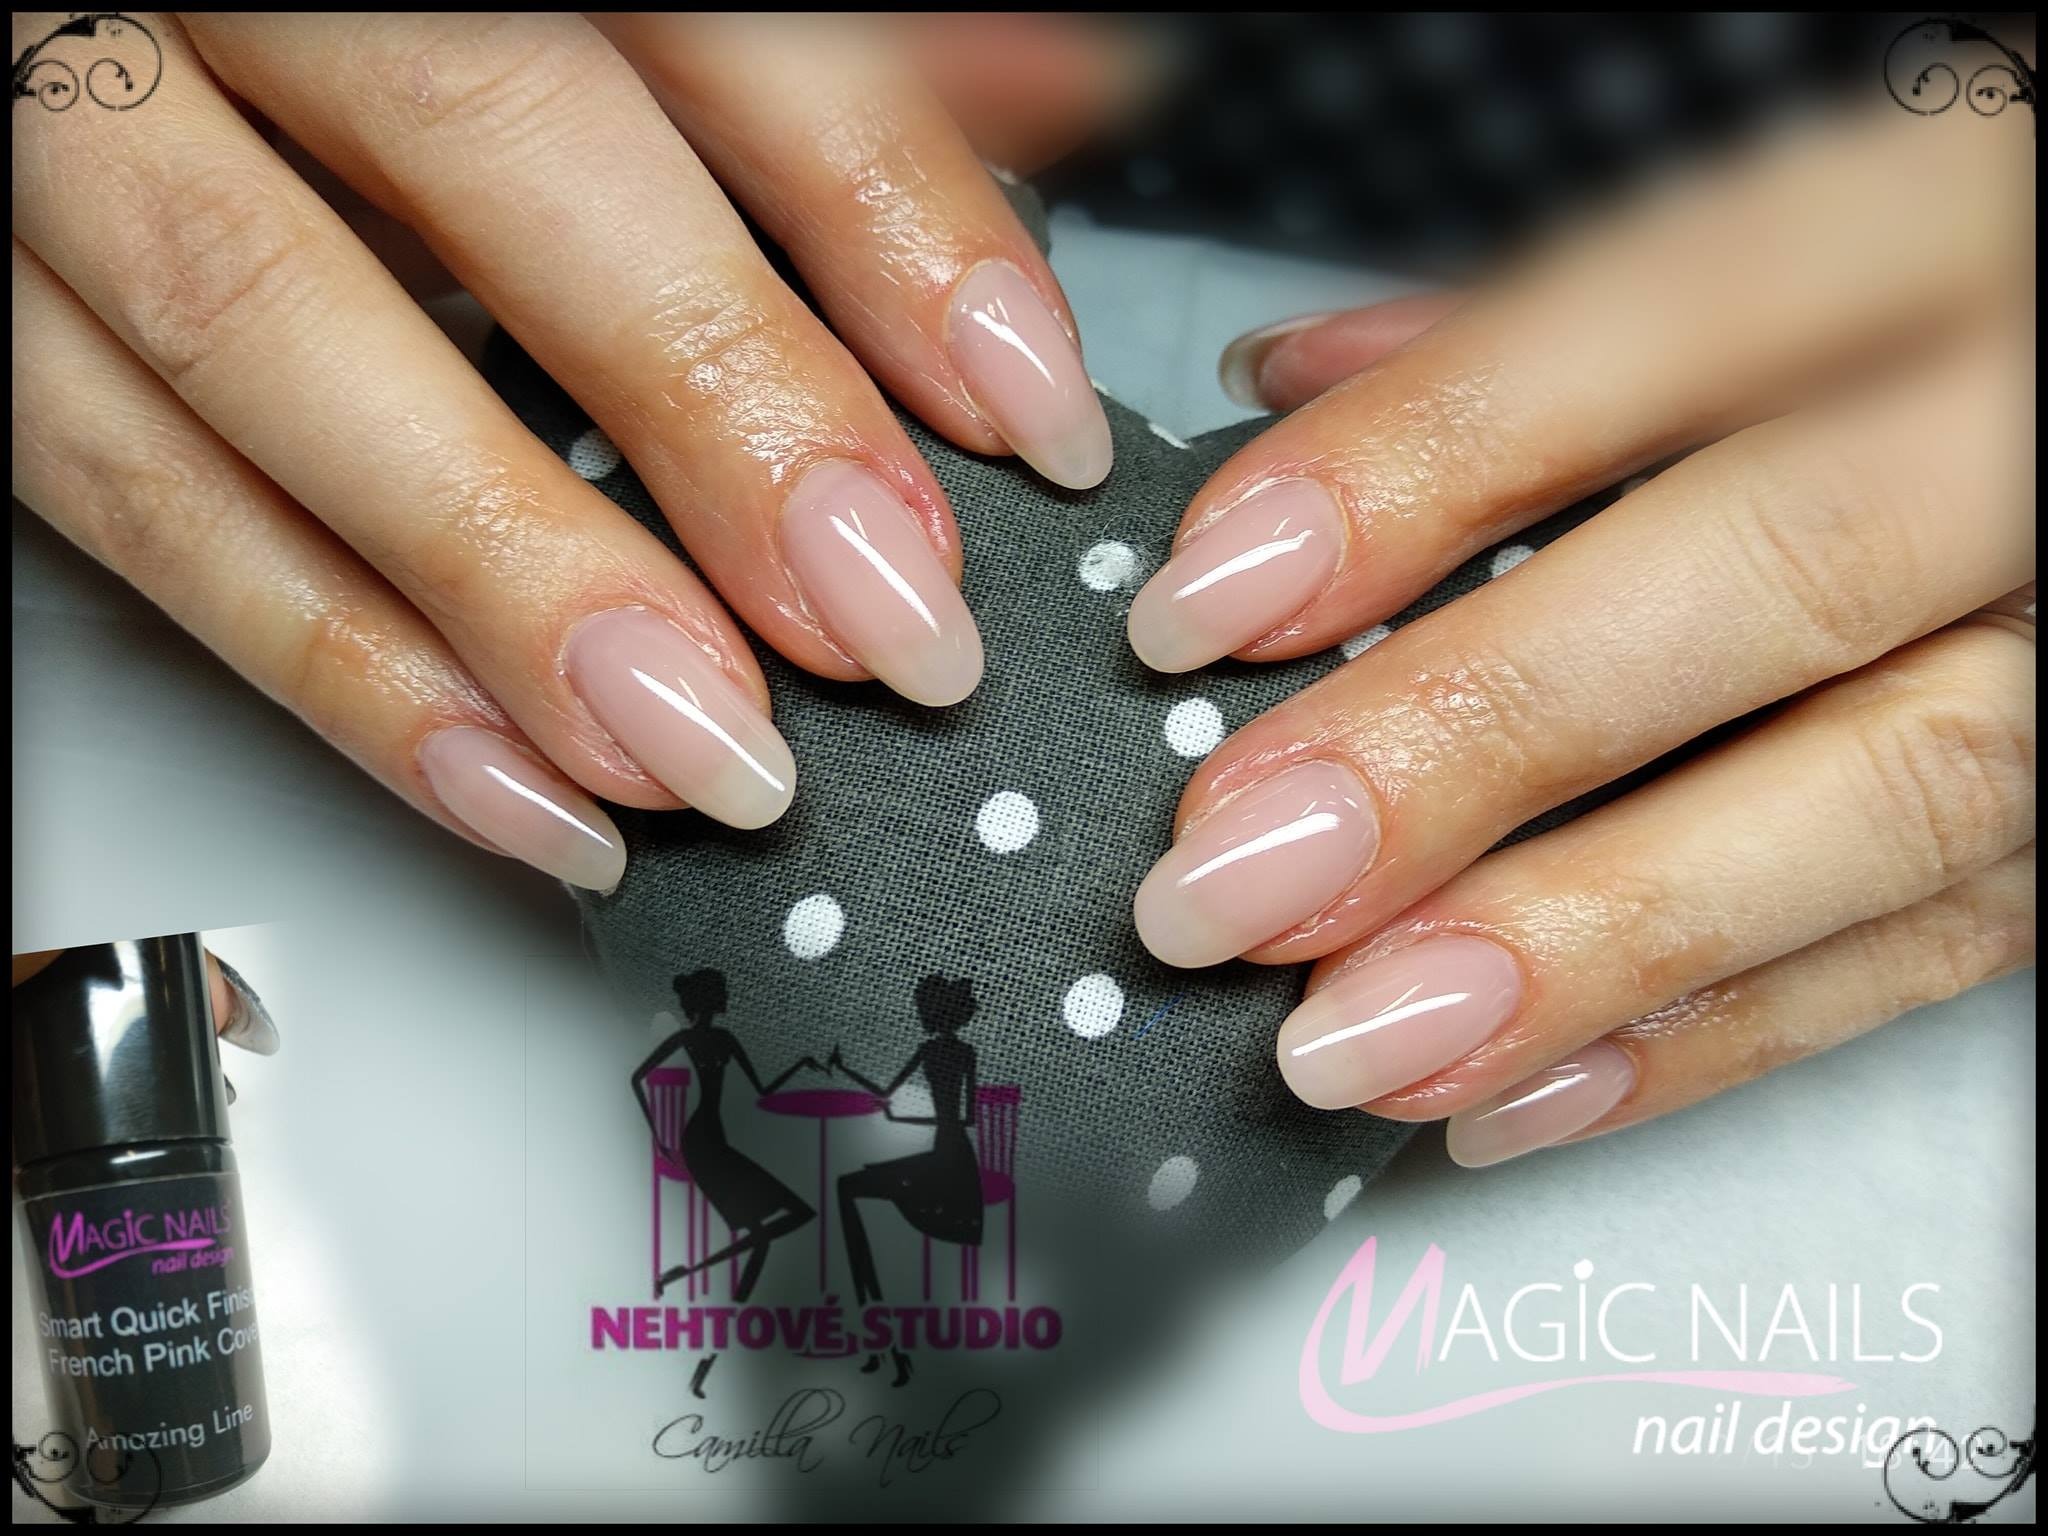 Magic Nails Gel Lak Amazing Line Smart Qf French Pink Cover 5 Ml Magic Nails Gelove Nehty